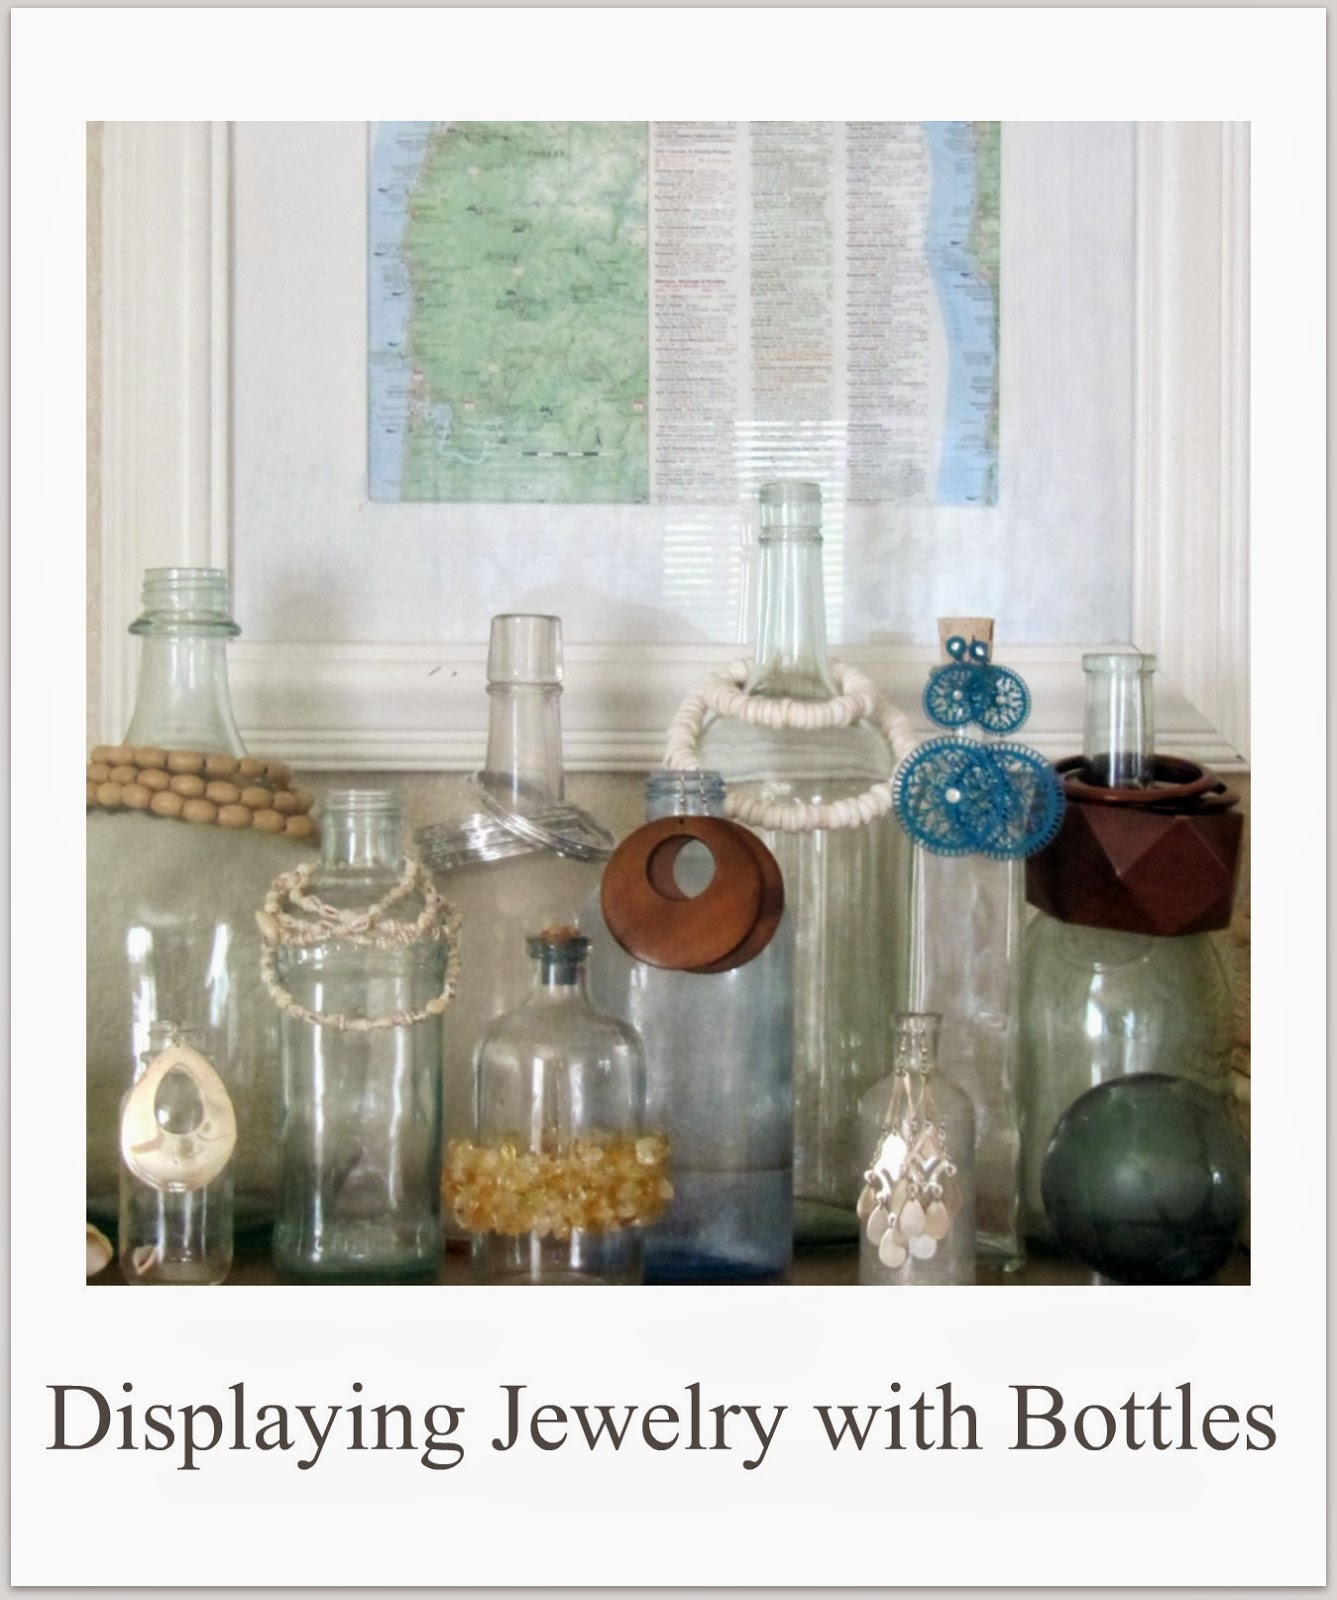 http://thewickerhouse.blogspot.com/2011/08/displaying-jewelry-with-bottles.html